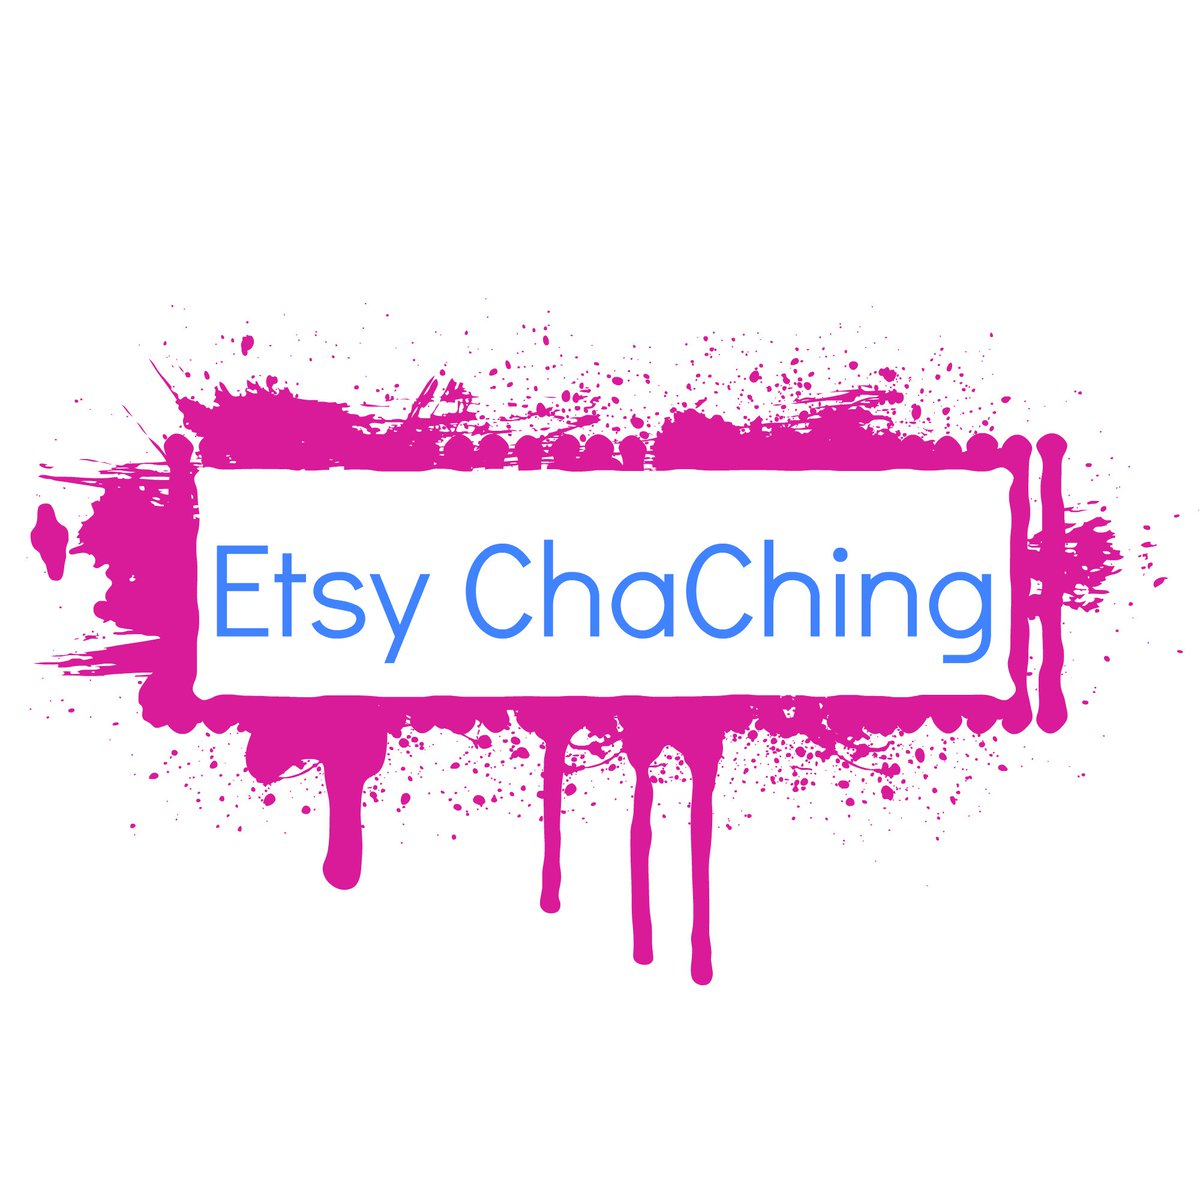 Come join our #etsychaching FB group for daily games &amp; party reminders!  https://www. facebook.com/groups/etsycha ching/ &nbsp; …  #epiconetsy #craftshout #shoppershour #etsy<br>http://pic.twitter.com/fUnMPl27TT